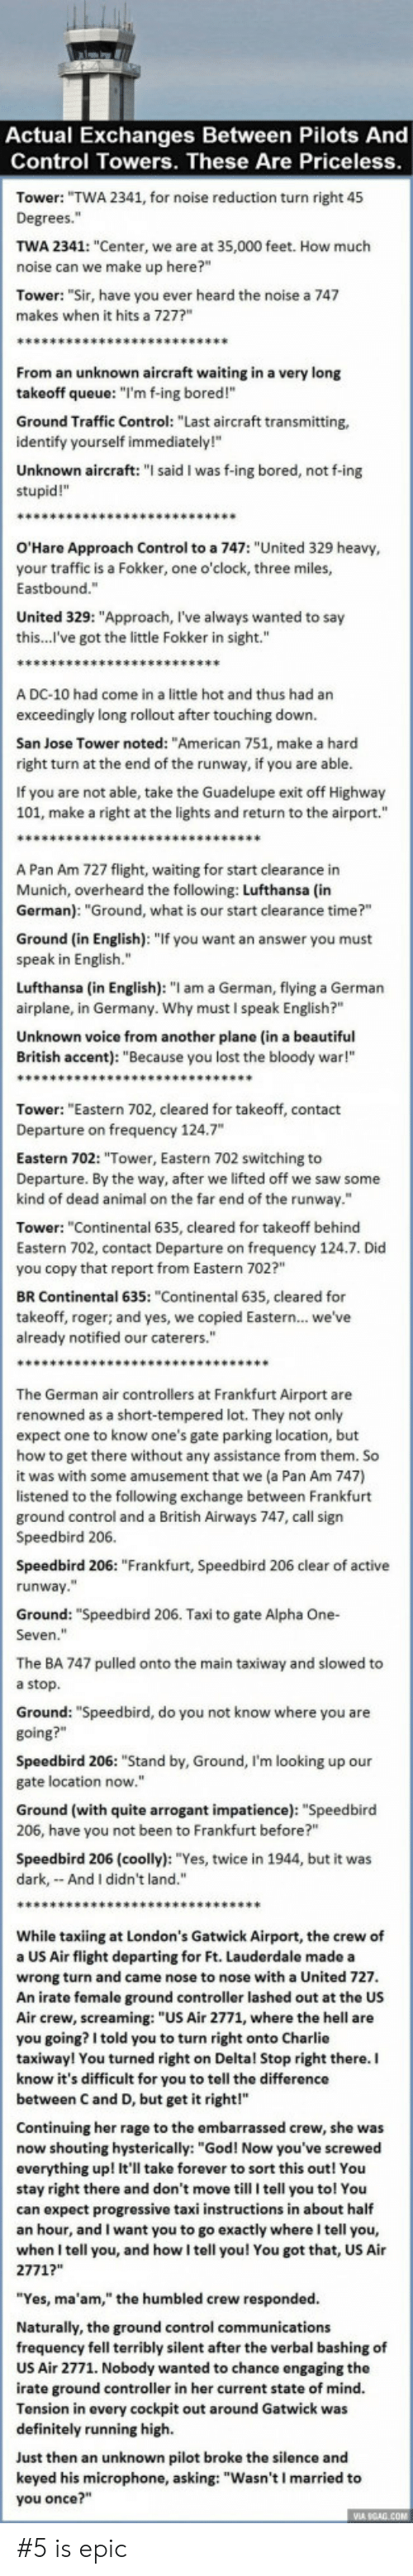 """Beautiful, Bored, and Charlie: Actual Exchanges Between Pilots And  Control Towers. These Are Priceless  Tower: """"TWA 2341, for noise reduction turn right 45  Degrees.""""  TWA 2341: """"Center, we are at 35,000 feet. How much  noise can we make up here?""""  Tower: """"Sir, have you ever heard the noise a 747  makes when it hits a 727?  From an unknown aircraft waiting in a very long  takeoff queue: """"I'm f-ing bored!""""  Ground Traffic Control: """"Last aircraft transmitting,  identify yourself immediately!""""  Unknown aircraft: """" said I was f-ing bored, not f-ing  stupid!""""  O'Hare Approach Control to a 747: """"United 329 heavy  your traffic is a Fokker, one o'clock, three miles,  Eastbound.""""  United 329: """"Approach, l've always wanted to say  this...l've got the little Fokker in sight.""""  A DC-10 had come in a little hot and thus had an  exceedingly long rollout after touching down.  San Jose Tower noted: """"American 751, make a harcd  right turn at the end of the runway, if you are able  If you are not able, take the Guadelupe exit off Highway  101, make a right at the lights and return to the airport.""""  A Pan Am 727 flight, waiting for start clearance in  Munich, overheard the following: Lufthansa (in  German): """"Ground, what is our start clearance time?""""  Ground (in English): """"If you want an answer you must  speak in English.""""  Lufthansa (in English): """"I am a German, flying a German  airplane, in Germany. Why must I speak English?""""  Unknown voice from another plane (in a beautiful  British accent): """"Because you lost the bloody war!""""  Tower: """"Eastern 702, cleared for takeoff, contact  Departure on frequency 124.7  Eastern 702: """"Tower, Eastern 702 switching to  Departure. By the way, after we lifted off we saw some  kind of dead animal on the far end of the runway.""""  Tower: """"Continental 635, cleared for takeoff behind  Eastern 702, contact Departure on frequency 124.7. Did  you copy that report from Eastern 702?""""  BR Continental 635: """"Continental 635, cleared for  takeoff, roger; and yes, """